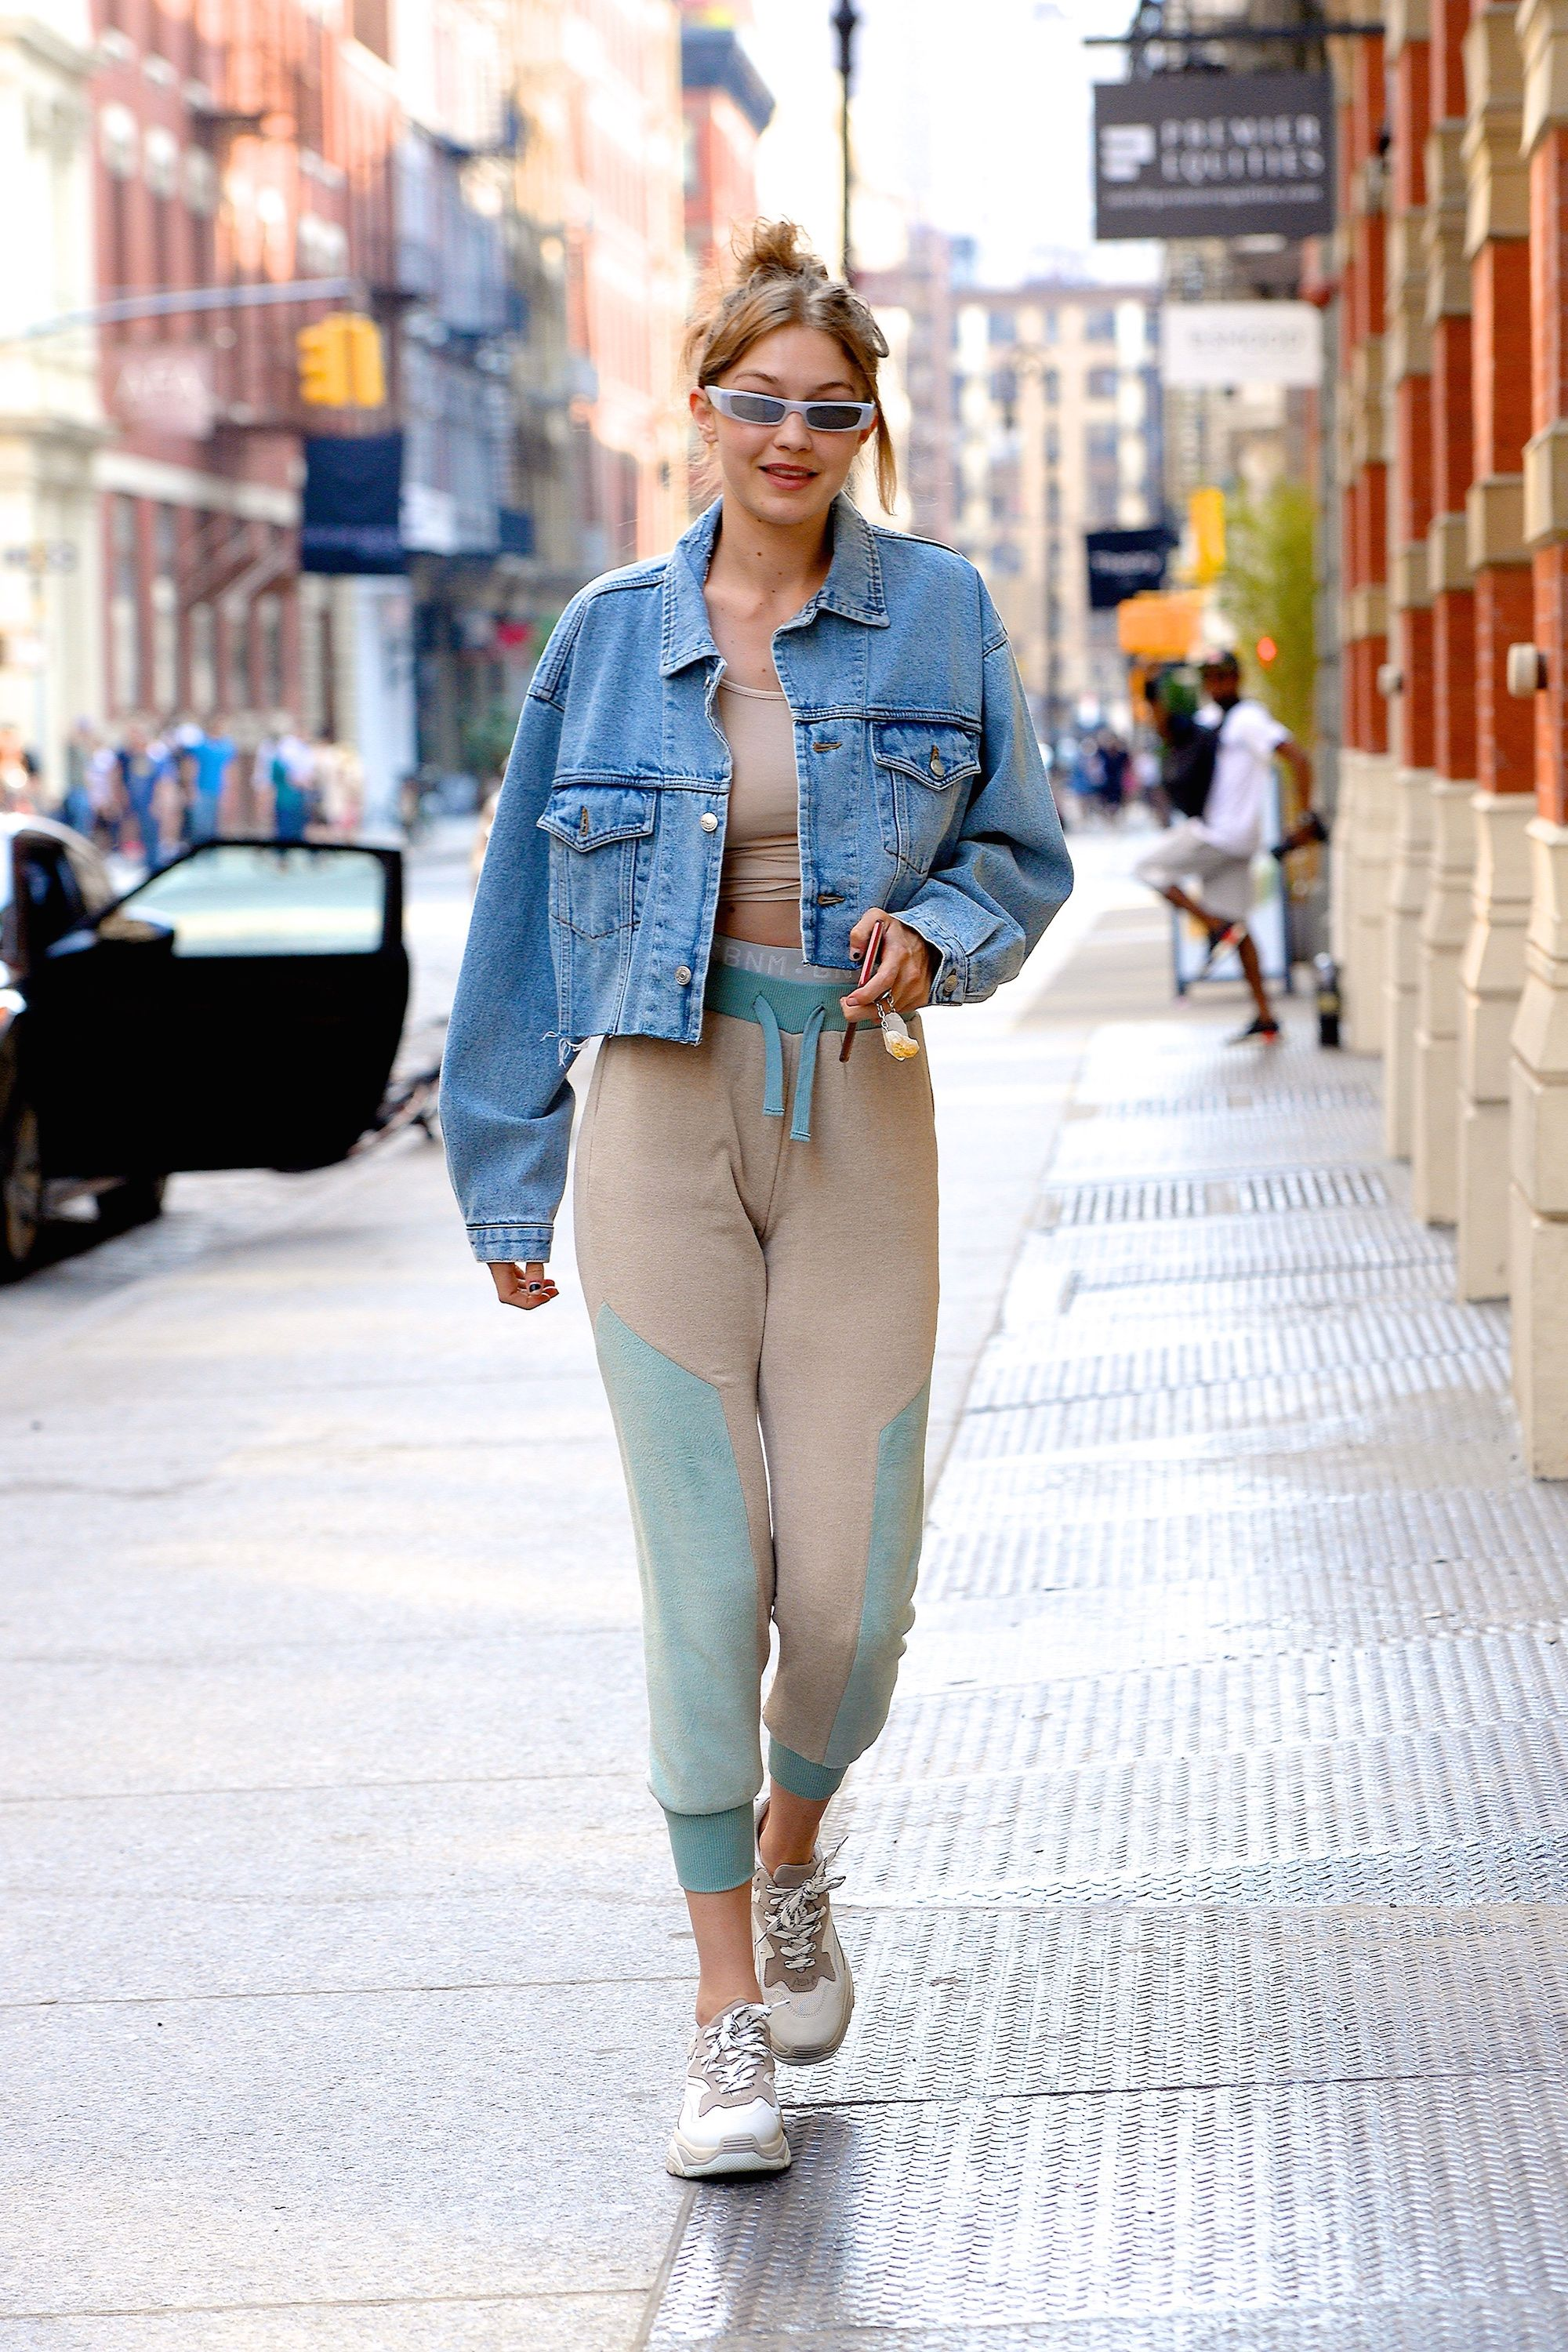 a05397c4e05  Gigi Hadid Outfit Photos — How to Get Gigi Hadid's Style